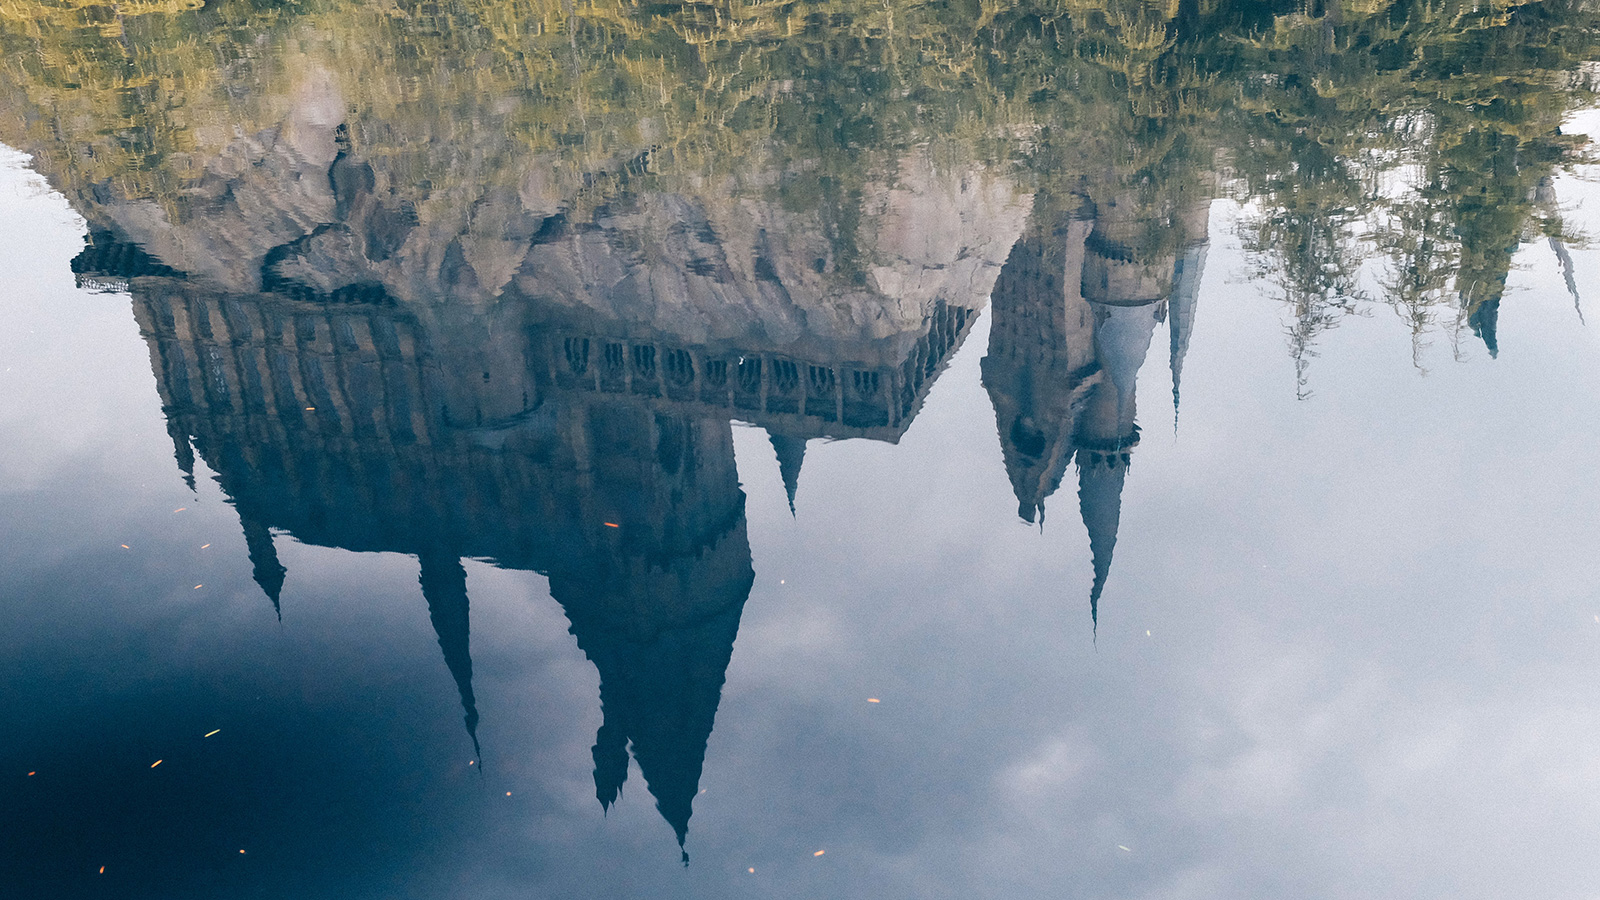 A reflection of Hogwarts Castle in a body of water.